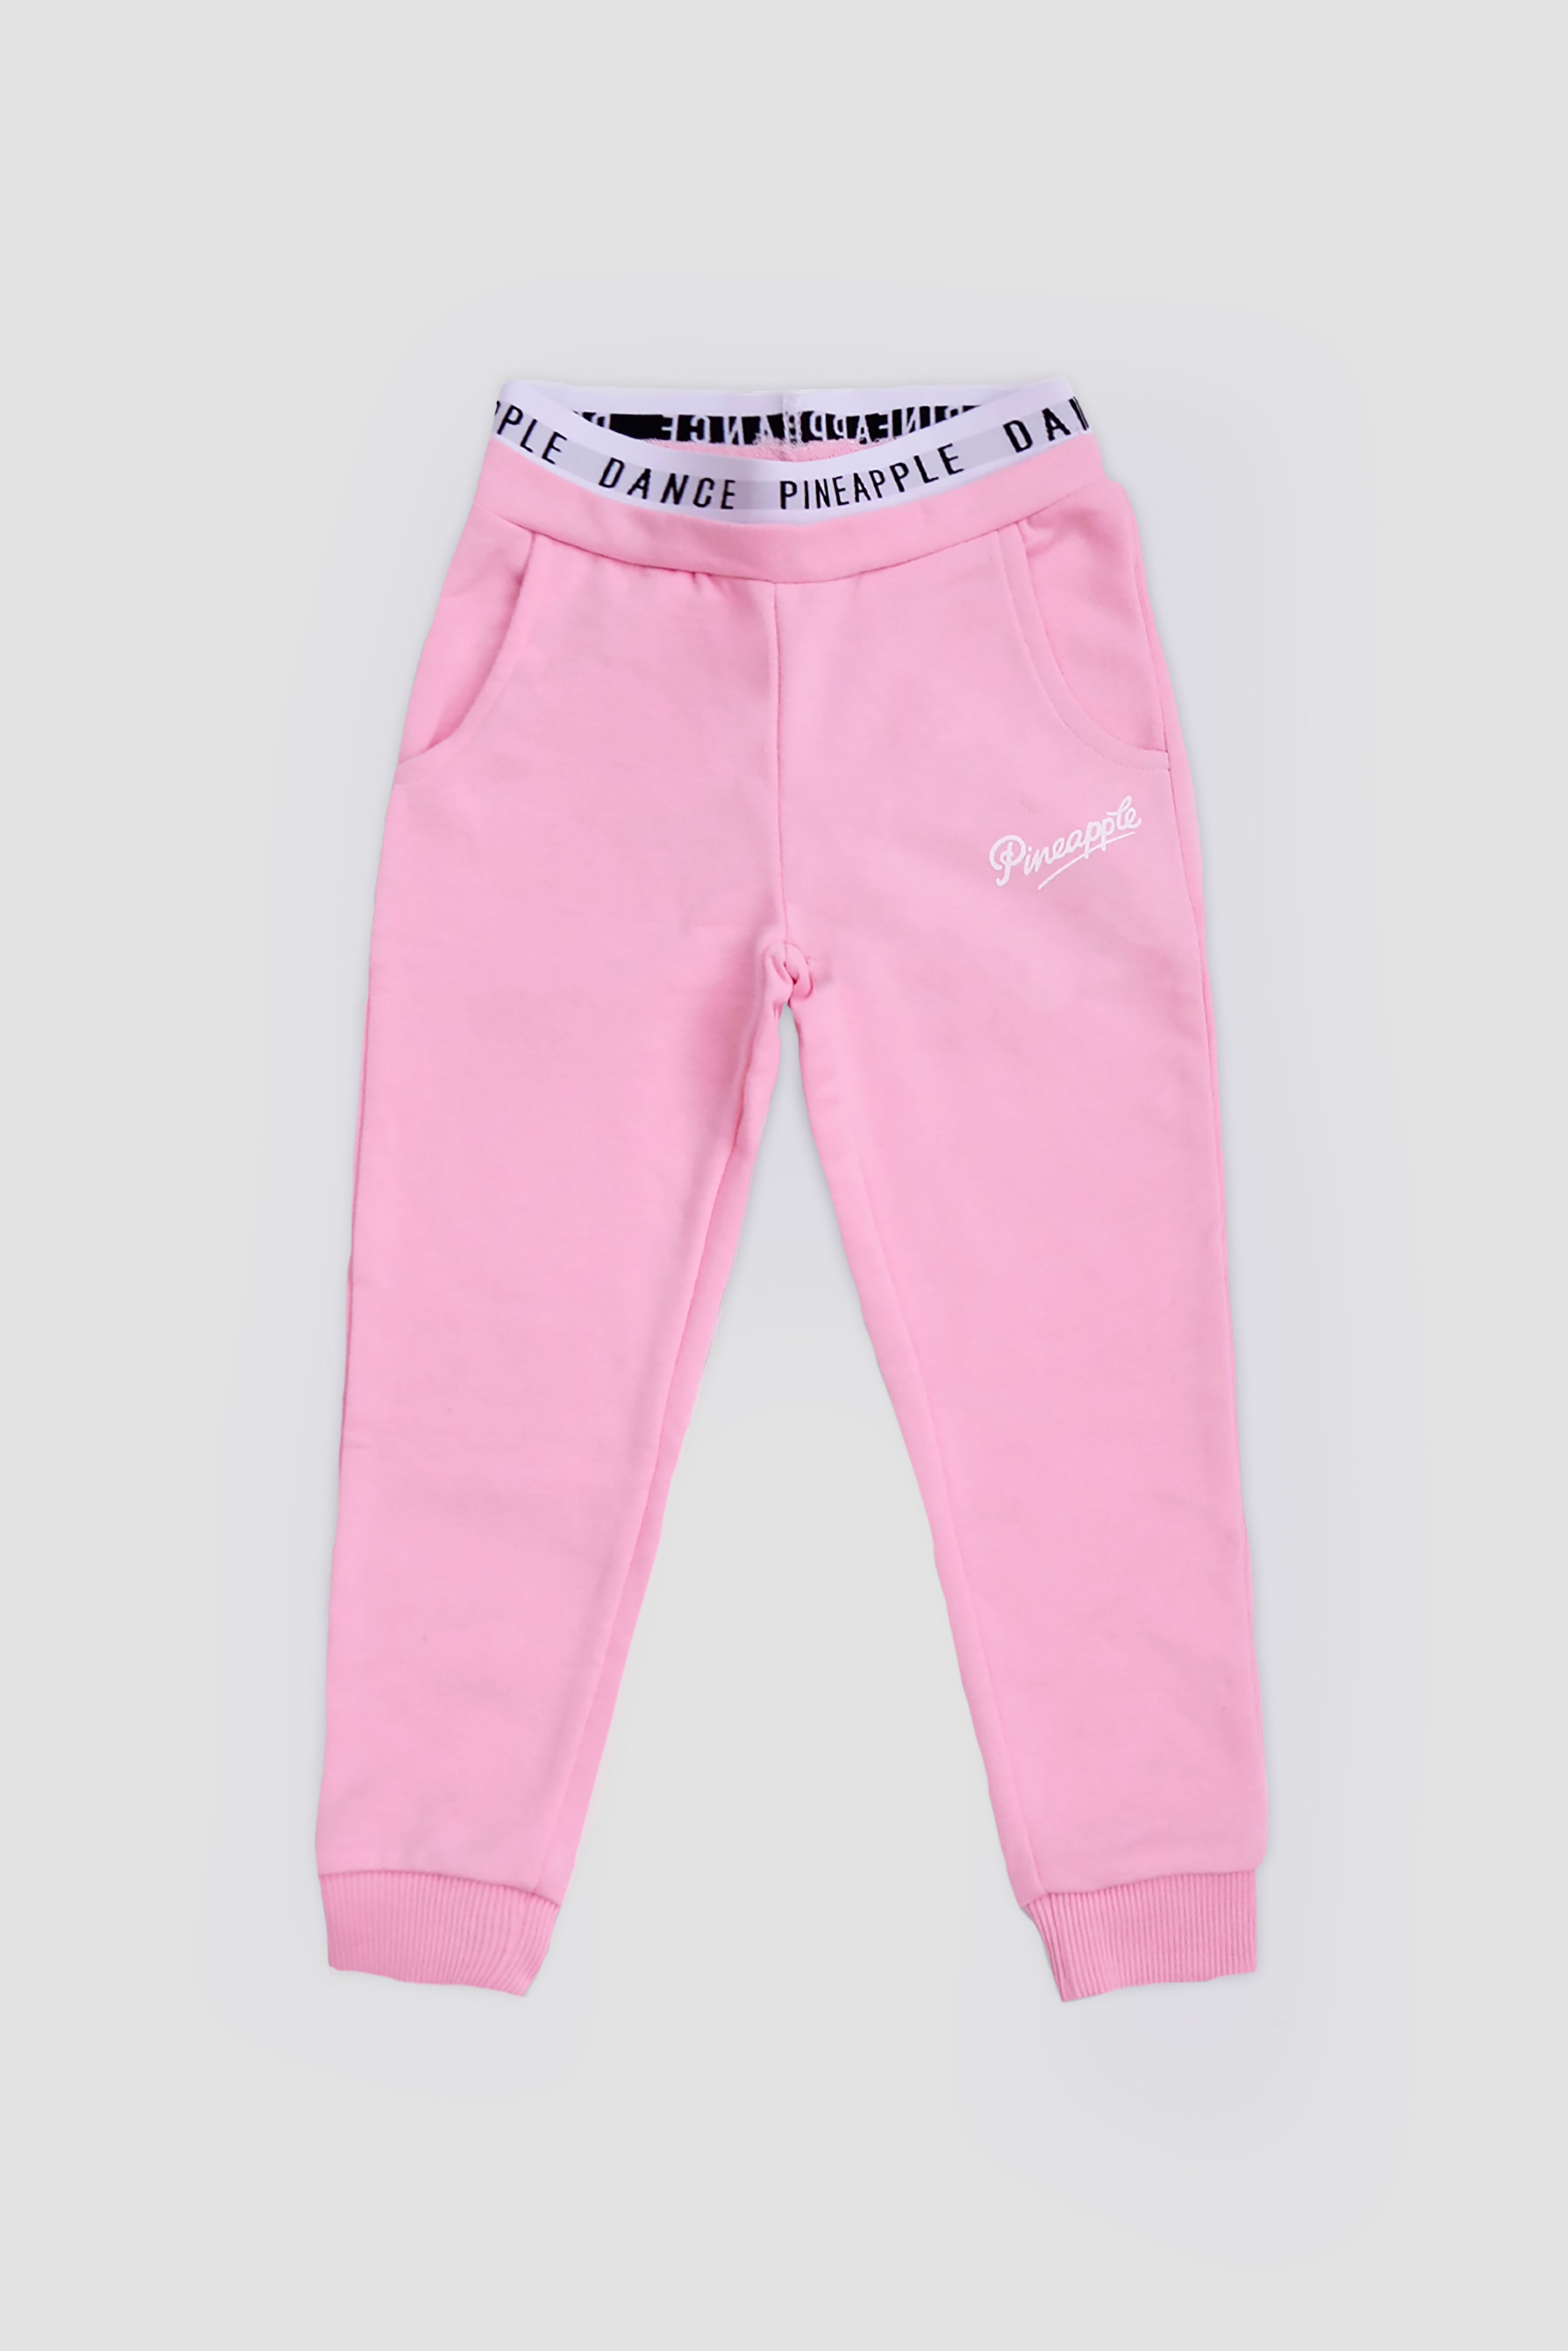 Pineapple Toddler Girls Pink Band Logo Jogger PT1744CP1